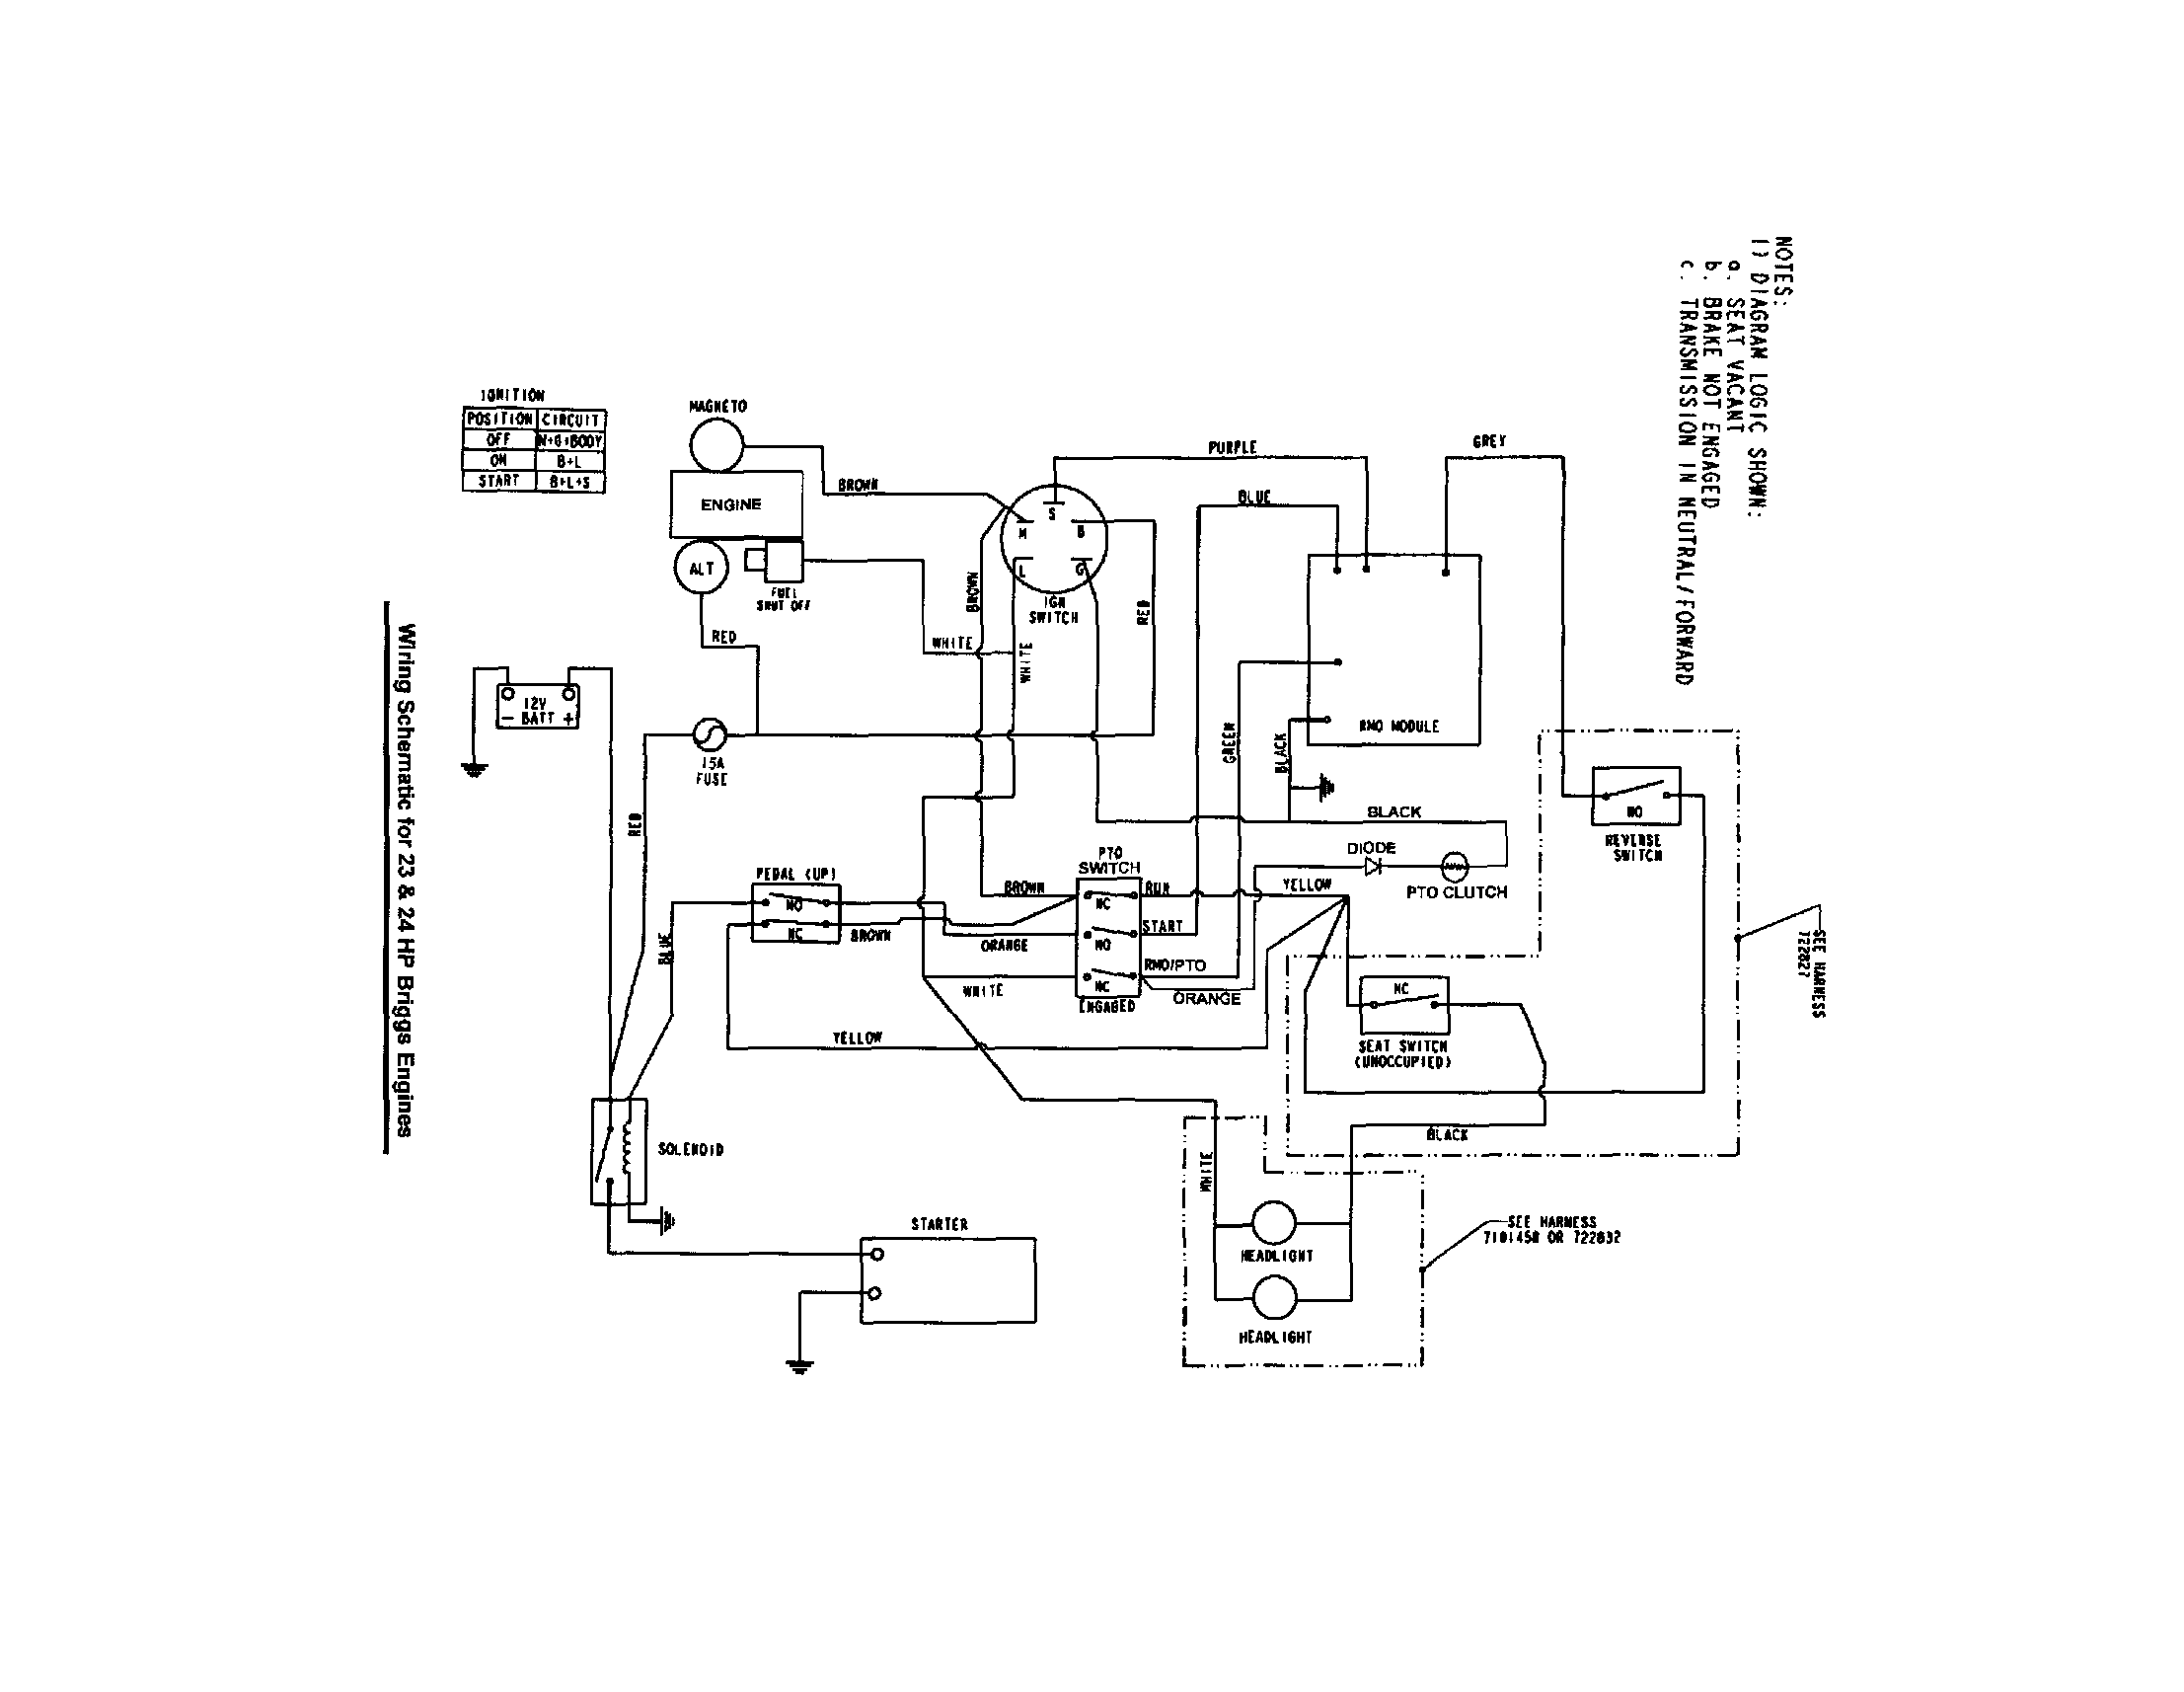 WIRING SCHEMATIC (7101446) Diagram & Parts List for Model